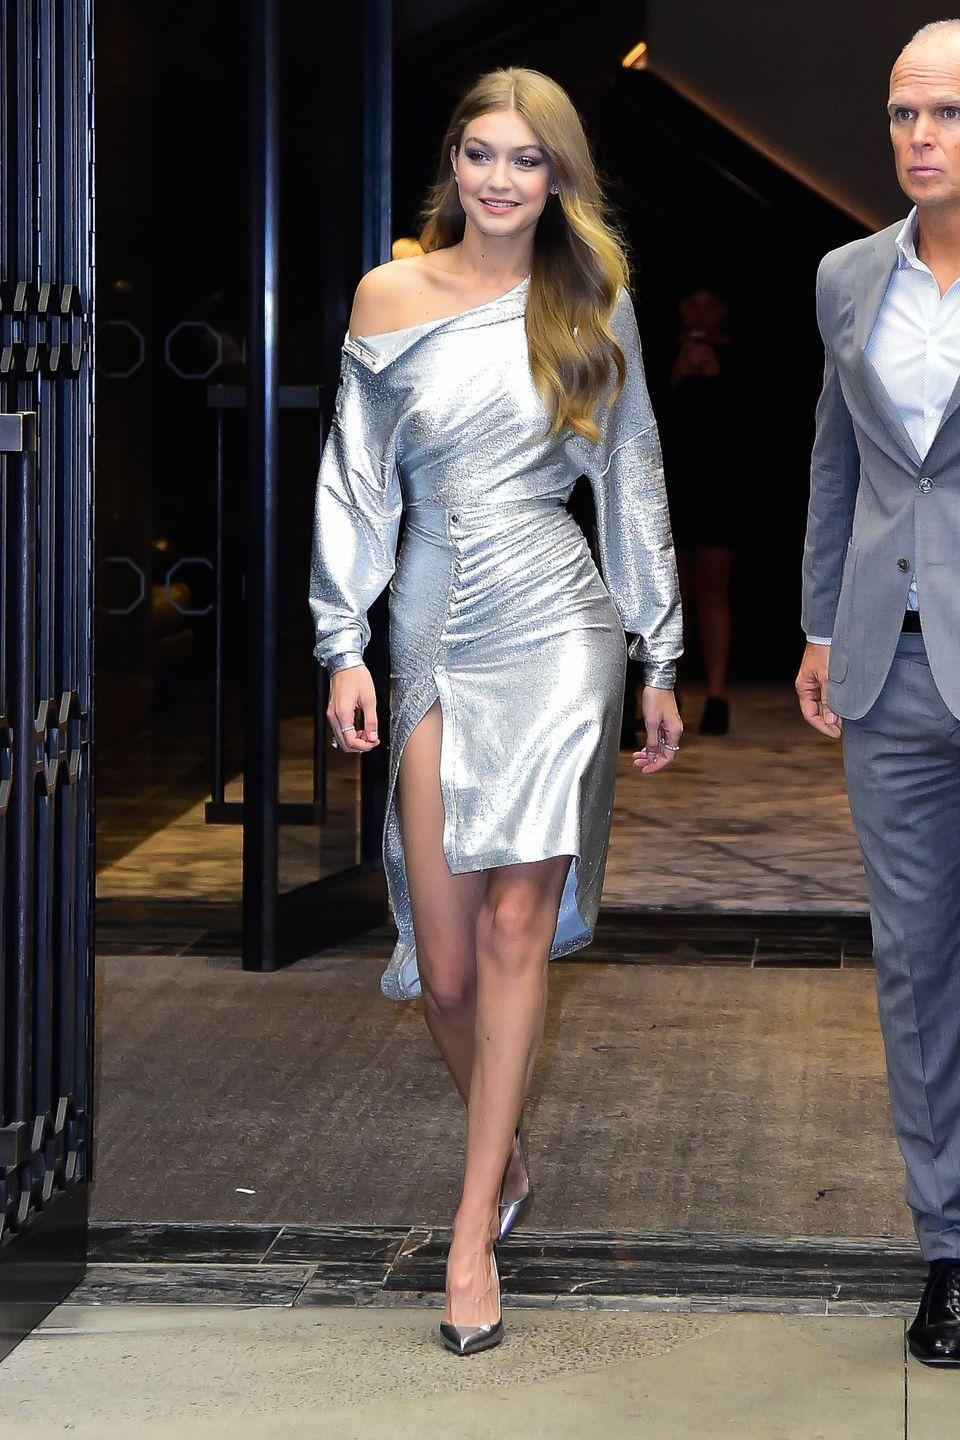 <p>In a metallic off-the-shoulder dress and mirrored heels at the Daily Front Row's Fashion Media Awards in NYC. </p>